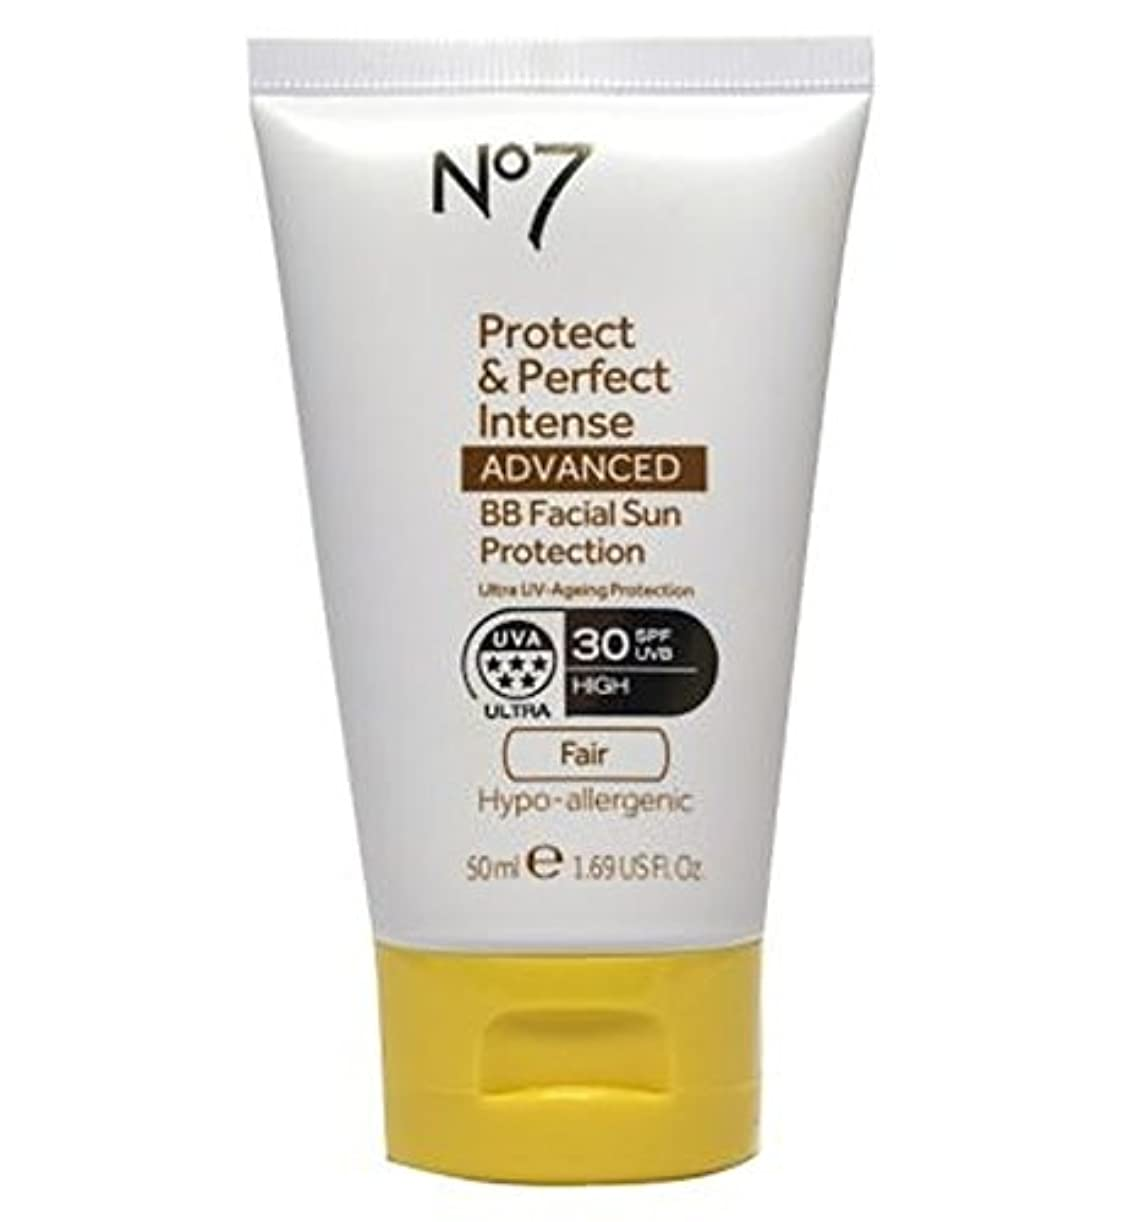 寄生虫ホールフラフープNo7 Protect & Perfect Intense ADVANCED BB Facial Sun Protection SPF30 Light 50ml - No7保護&完璧な強烈な先進Bb顔の日焼け防止Spf30...